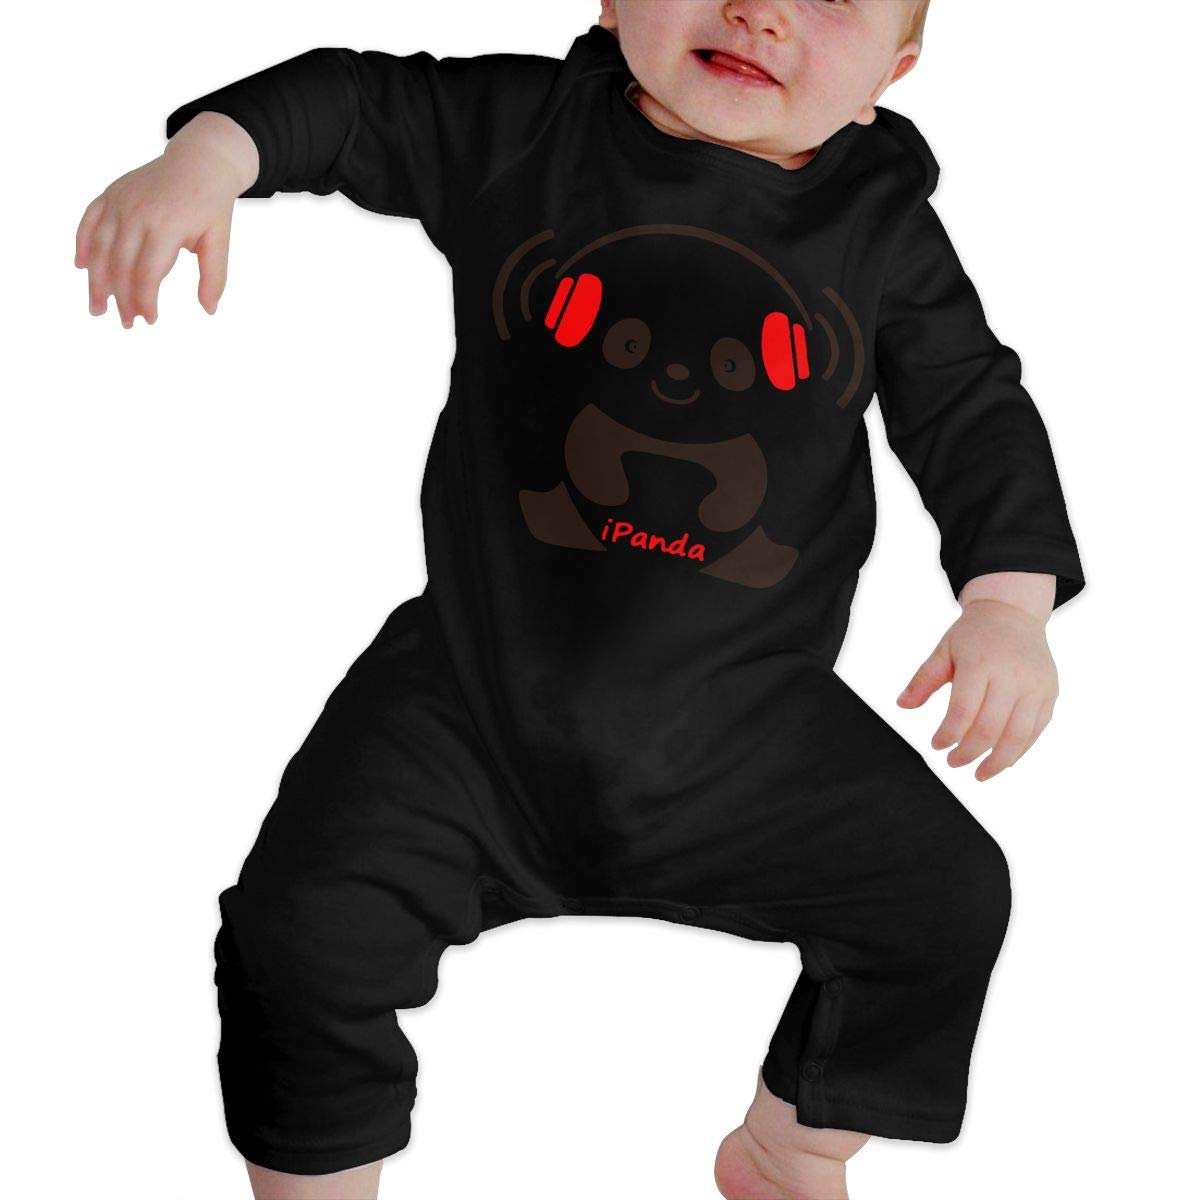 Fasenix Music Panda Newborn Baby Boy Girl Romper Jumpsuit Long Sleeve Bodysuit Overalls Outfits Clothes